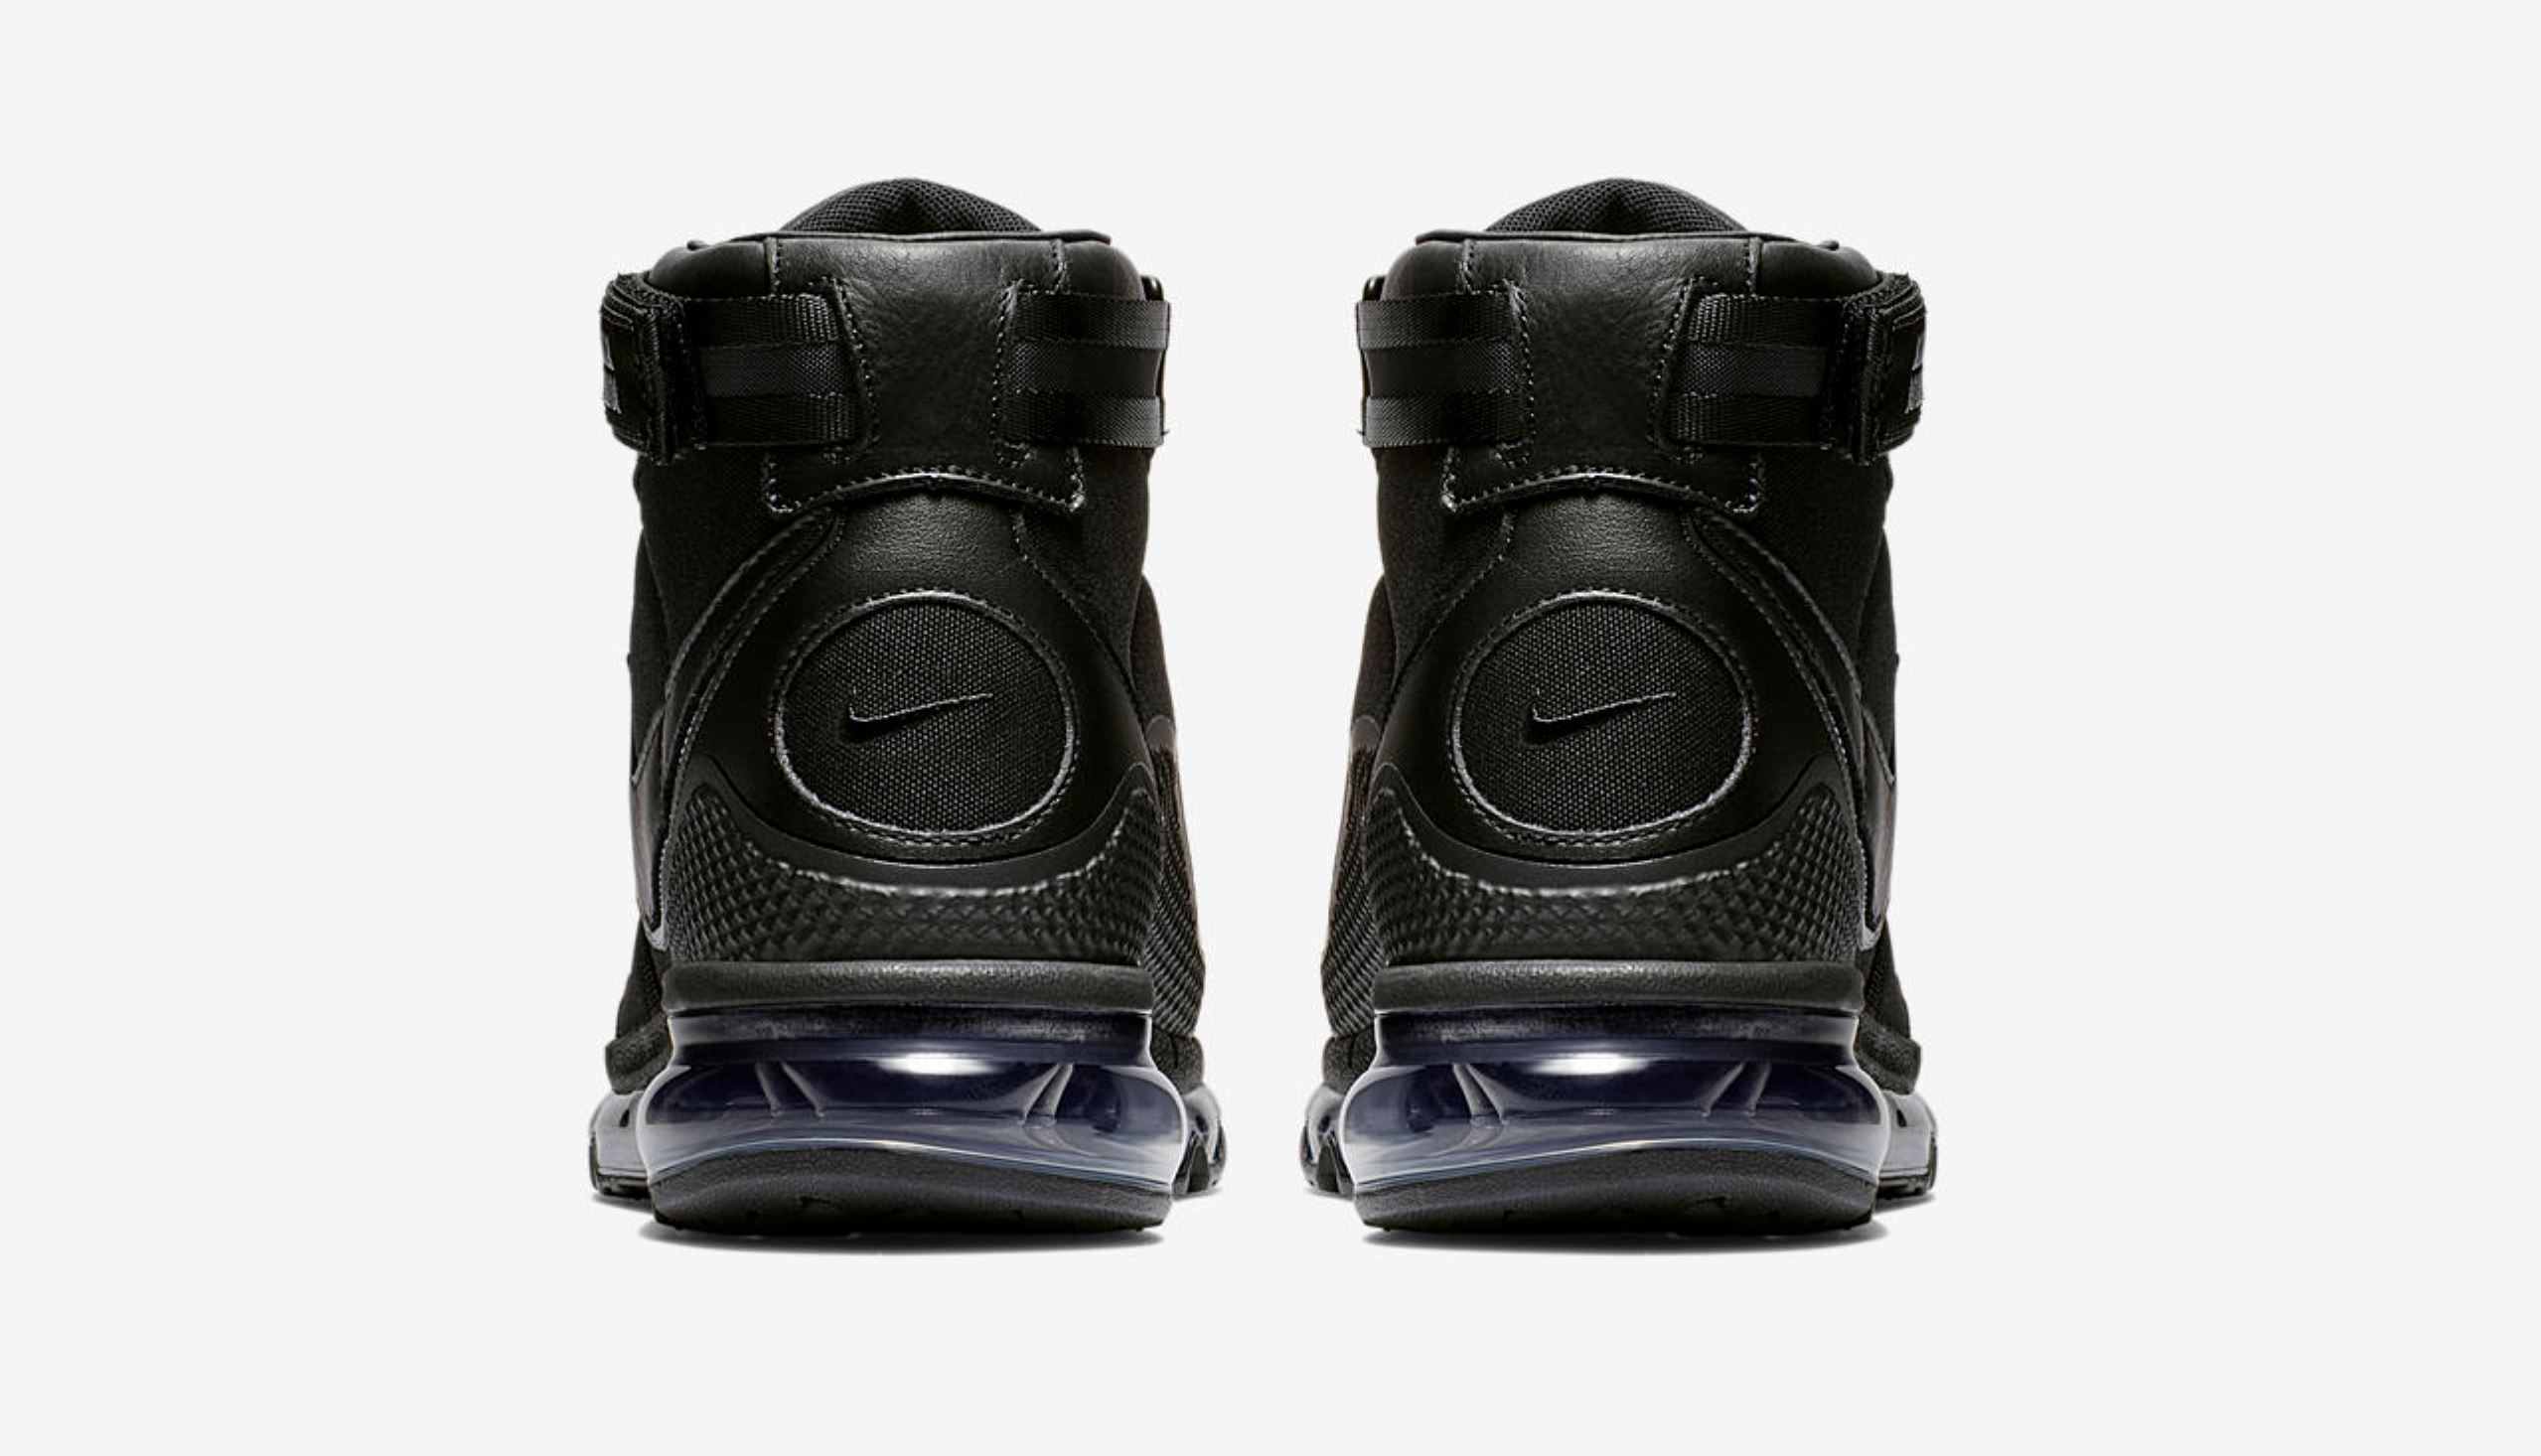 kim jones air max 360 high KJ black